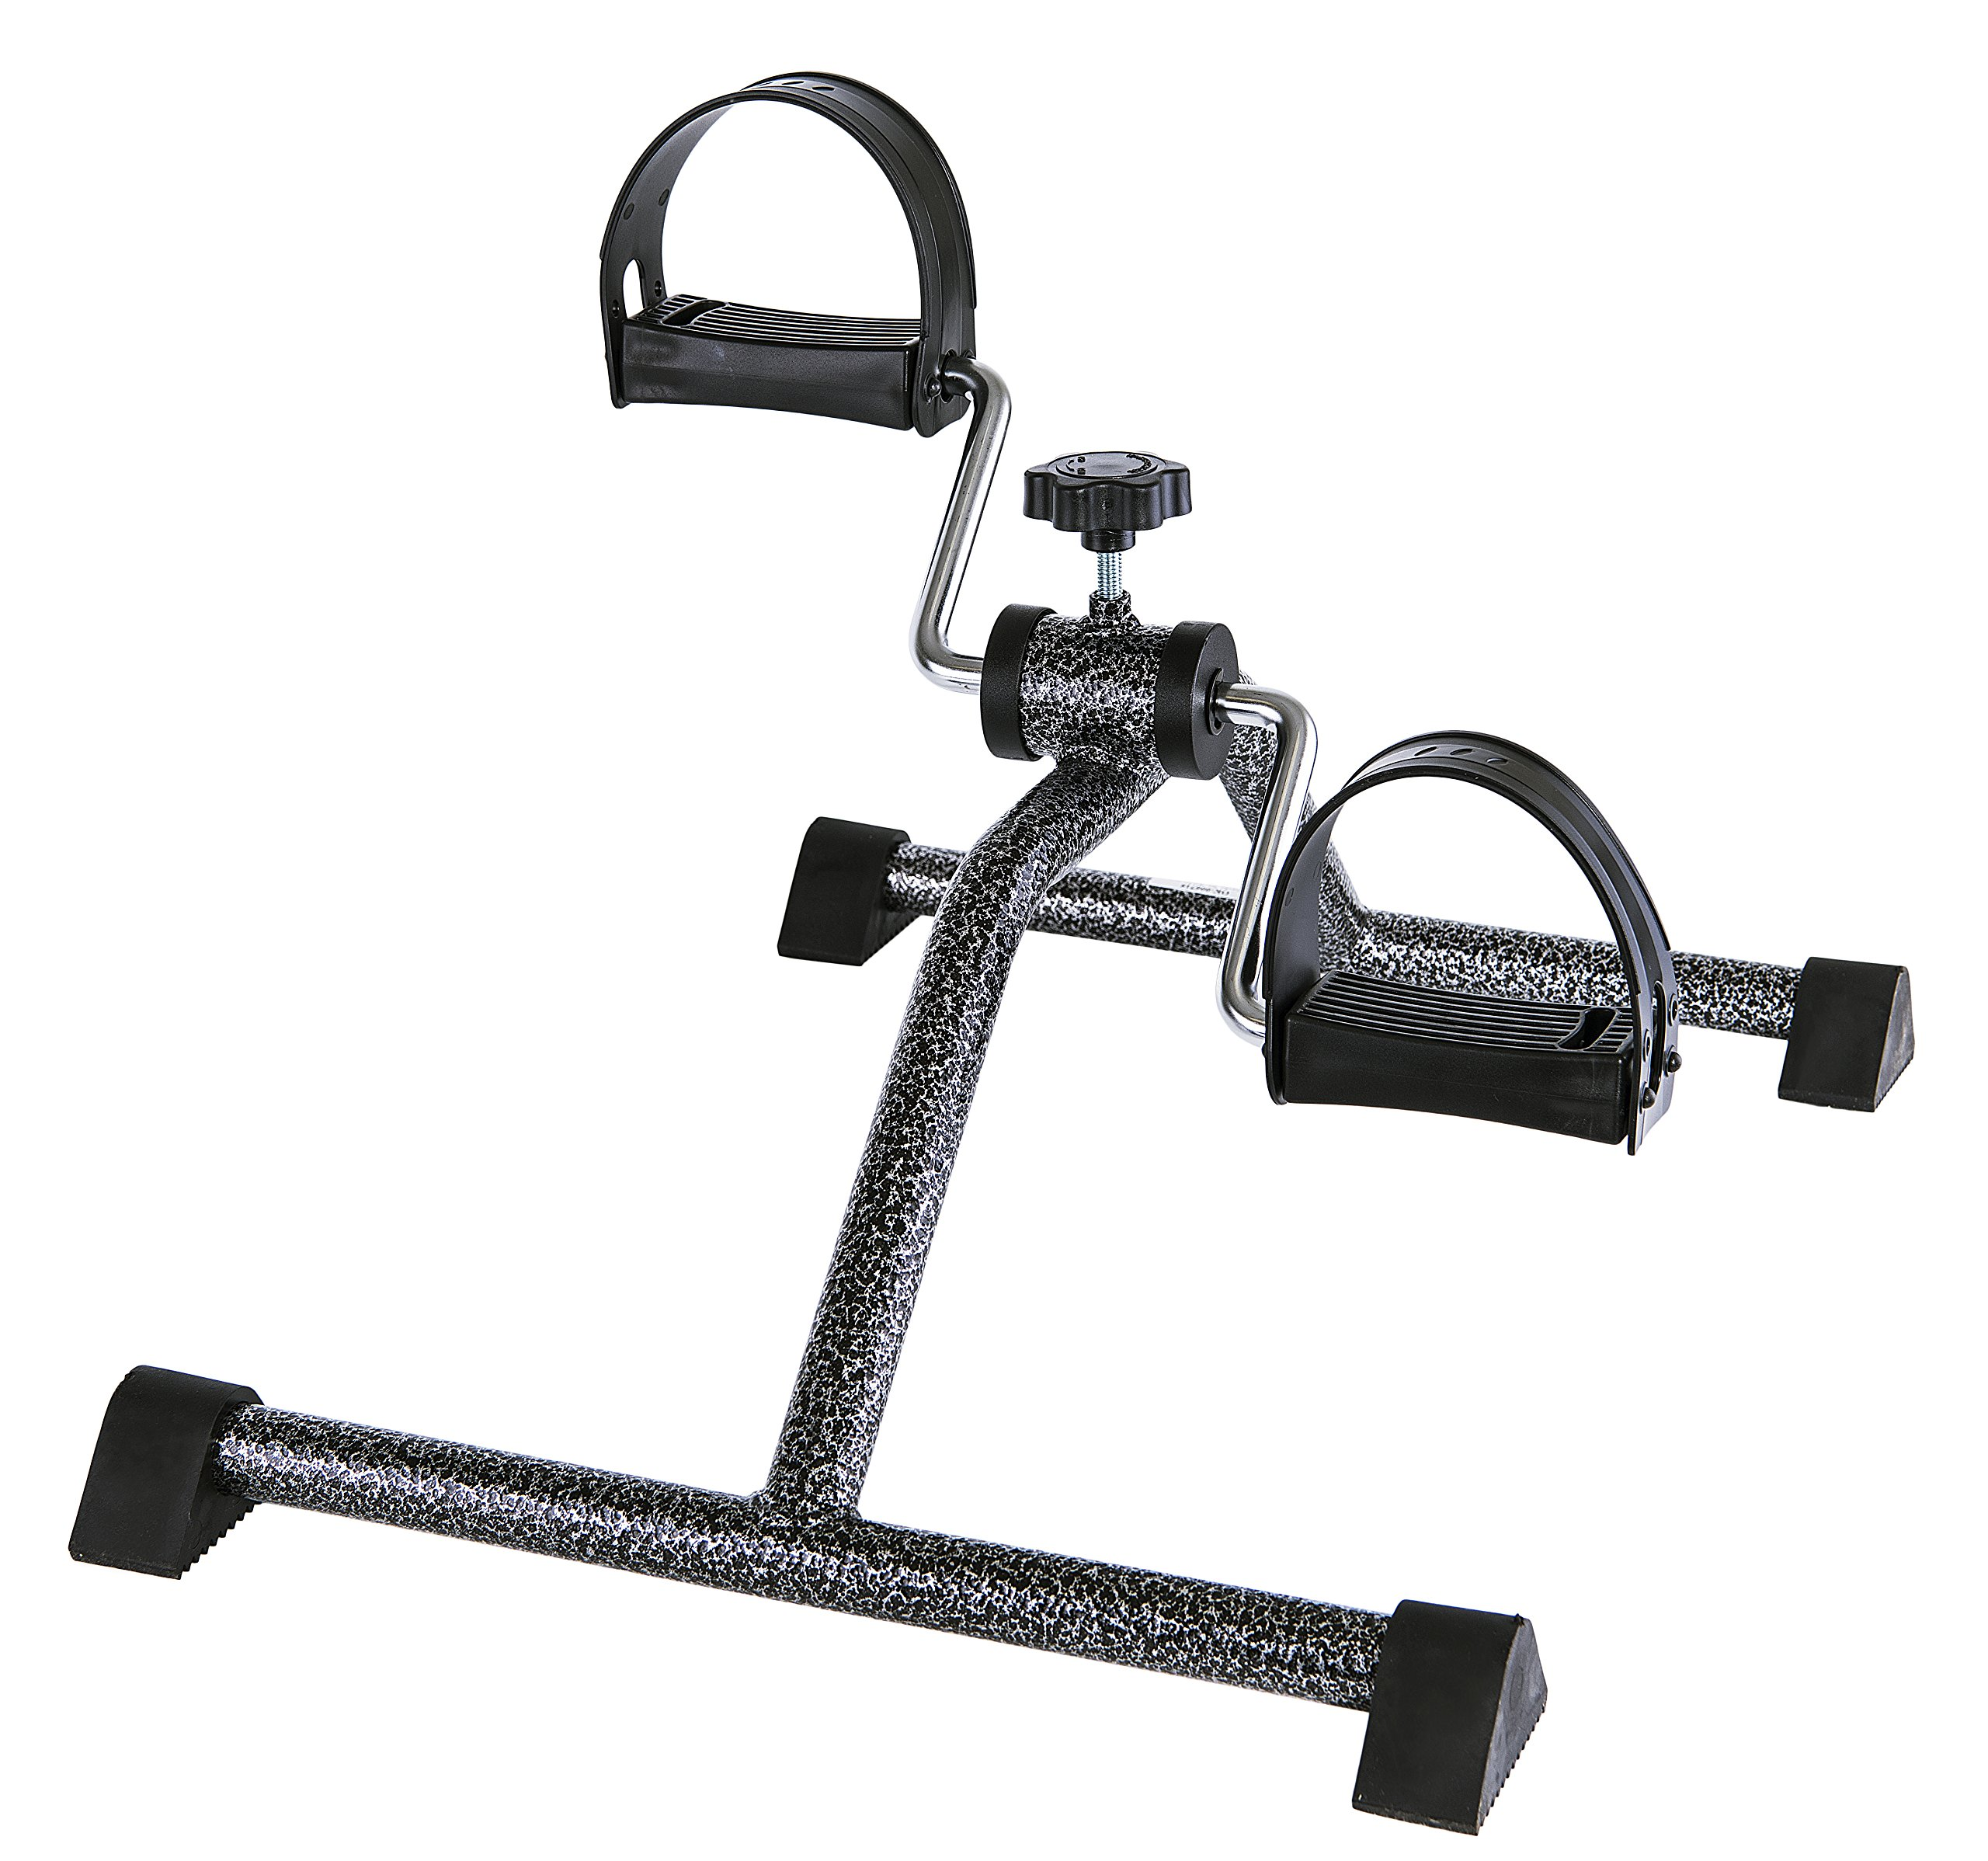 Medical Pedal Exerciser Gun-Metal Silver (Fully Assembled, no Tools Required)